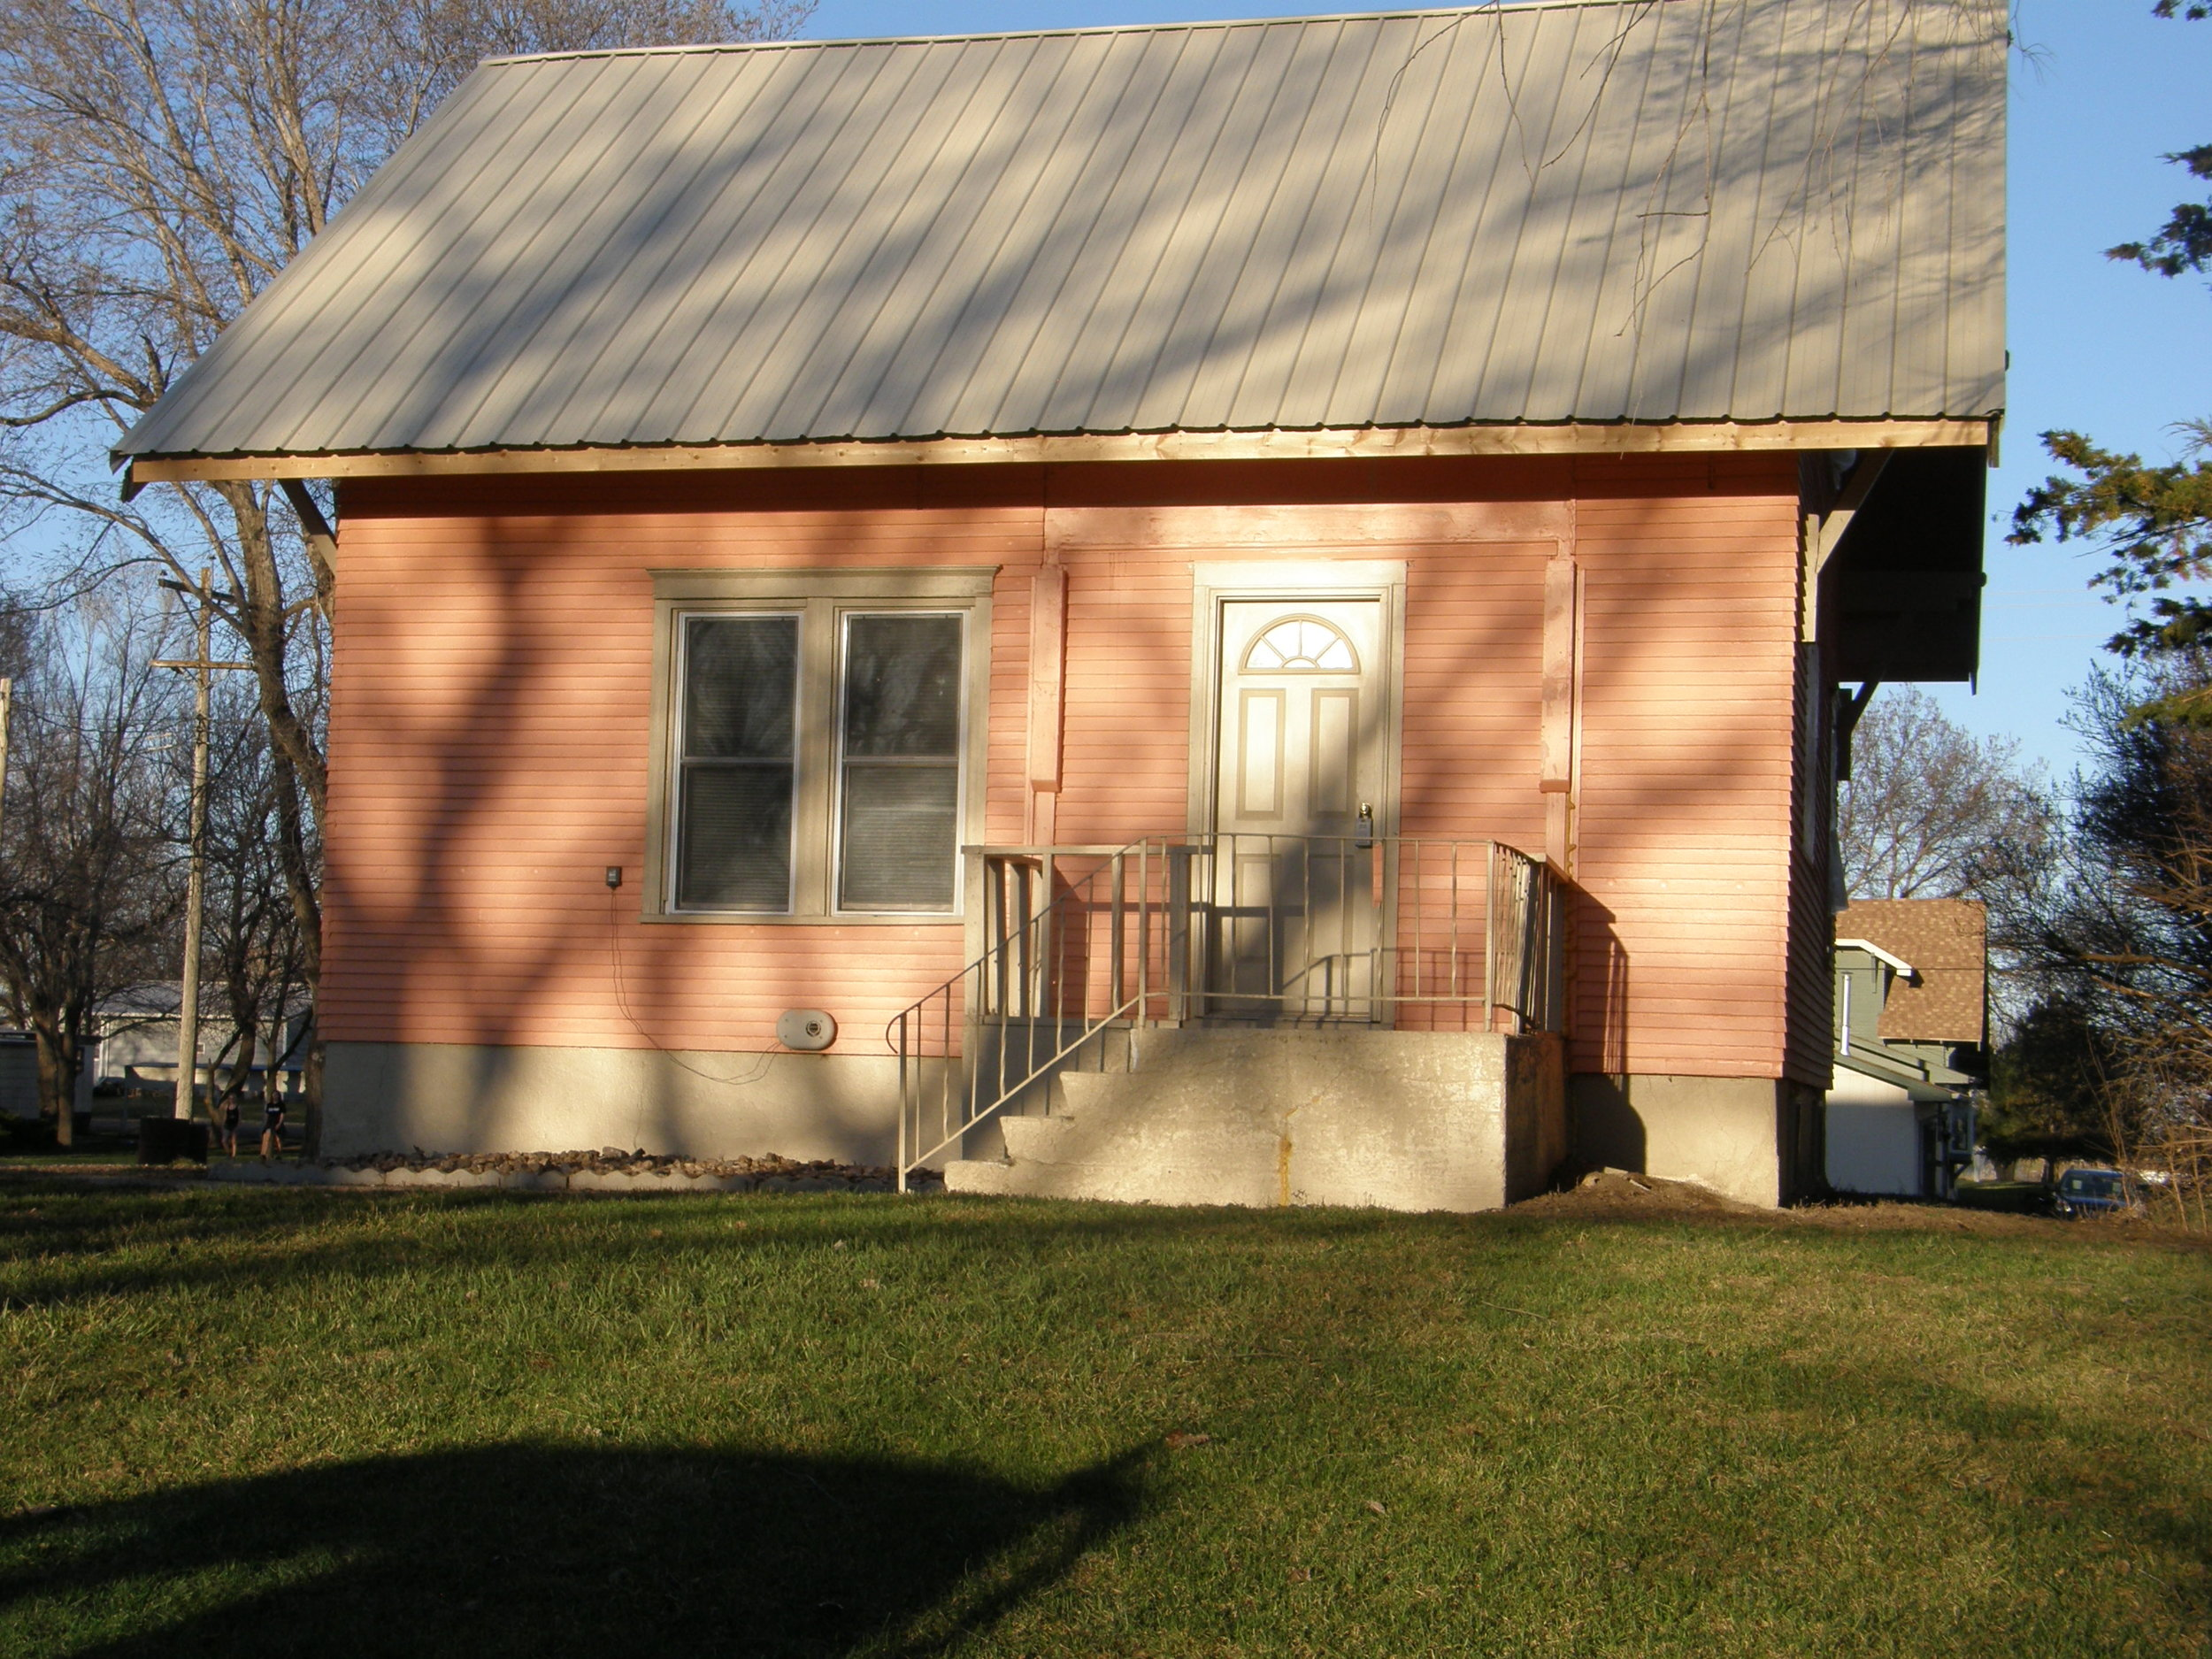 320 N Main St. - Kimball SD979 Sq. Ft.$30,000